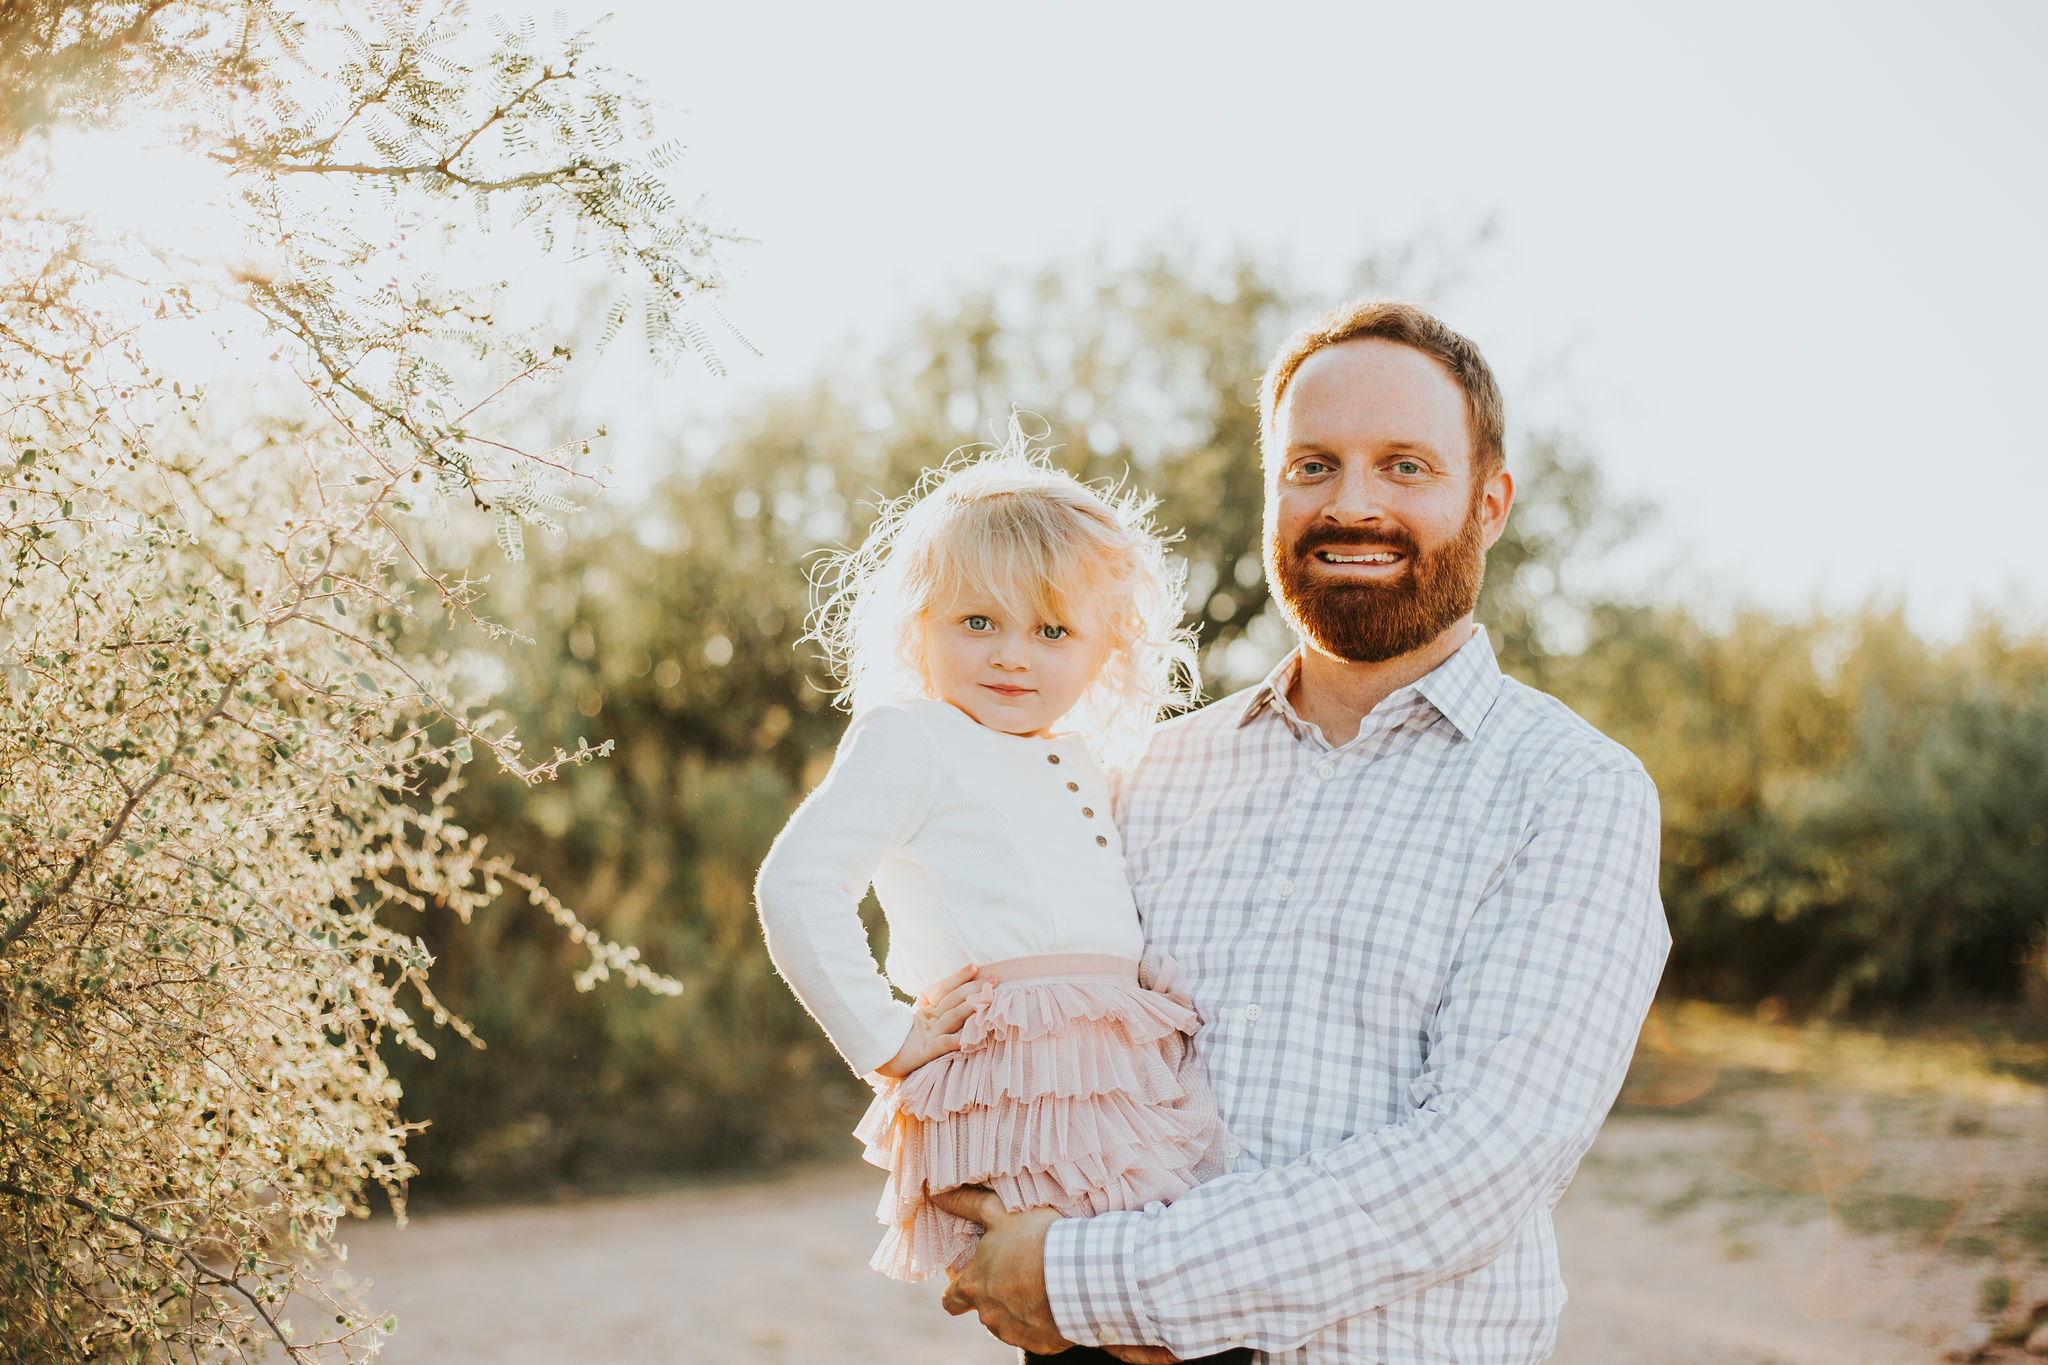 Father & Daughter portrait | Natural light desert lifestyle family photography session | Lost Dutchman Mesa Arizona